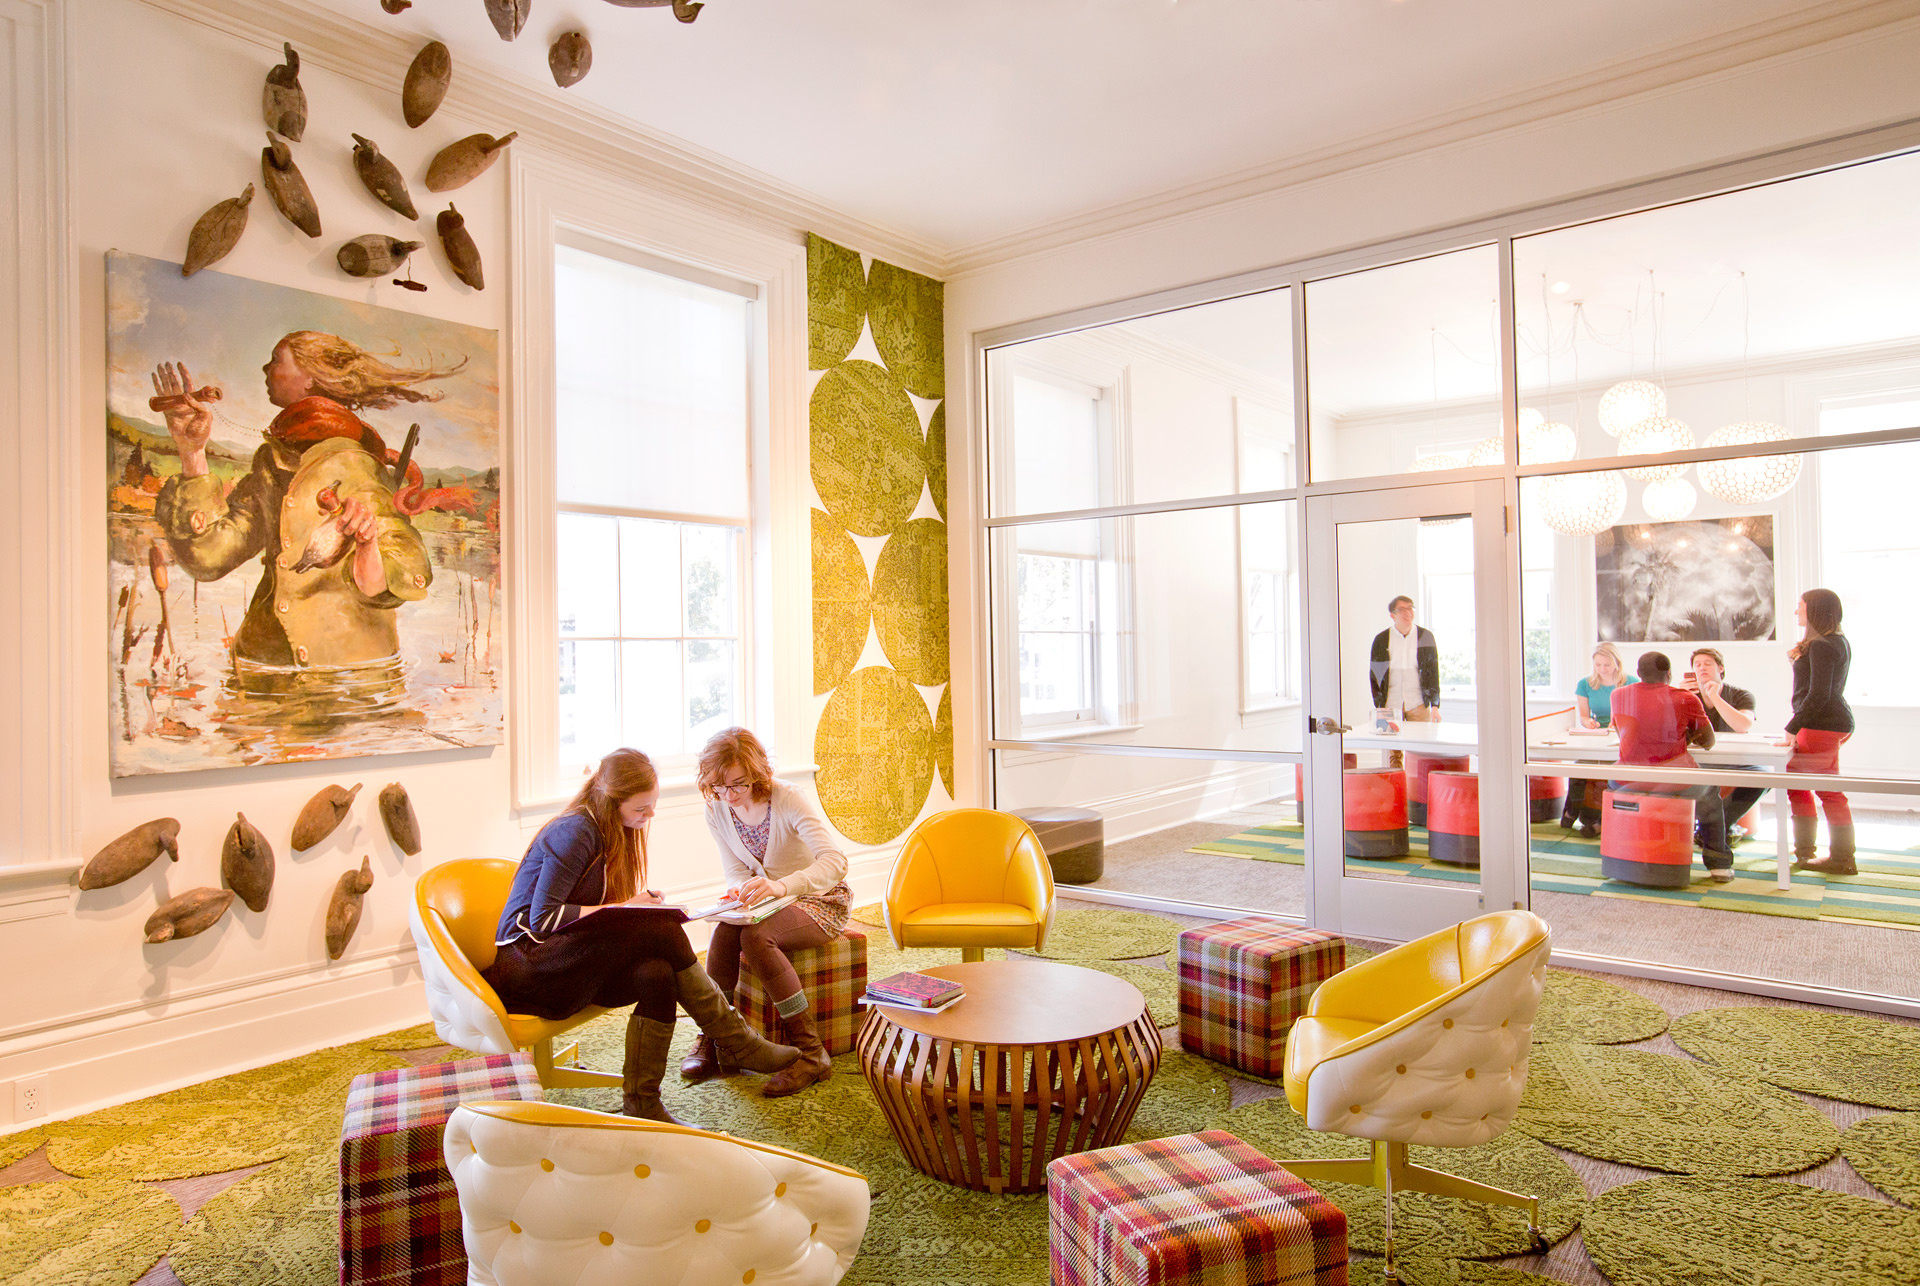 Scad interior design programs ranked no 1 in the nation - Scholarships for interior design students ...